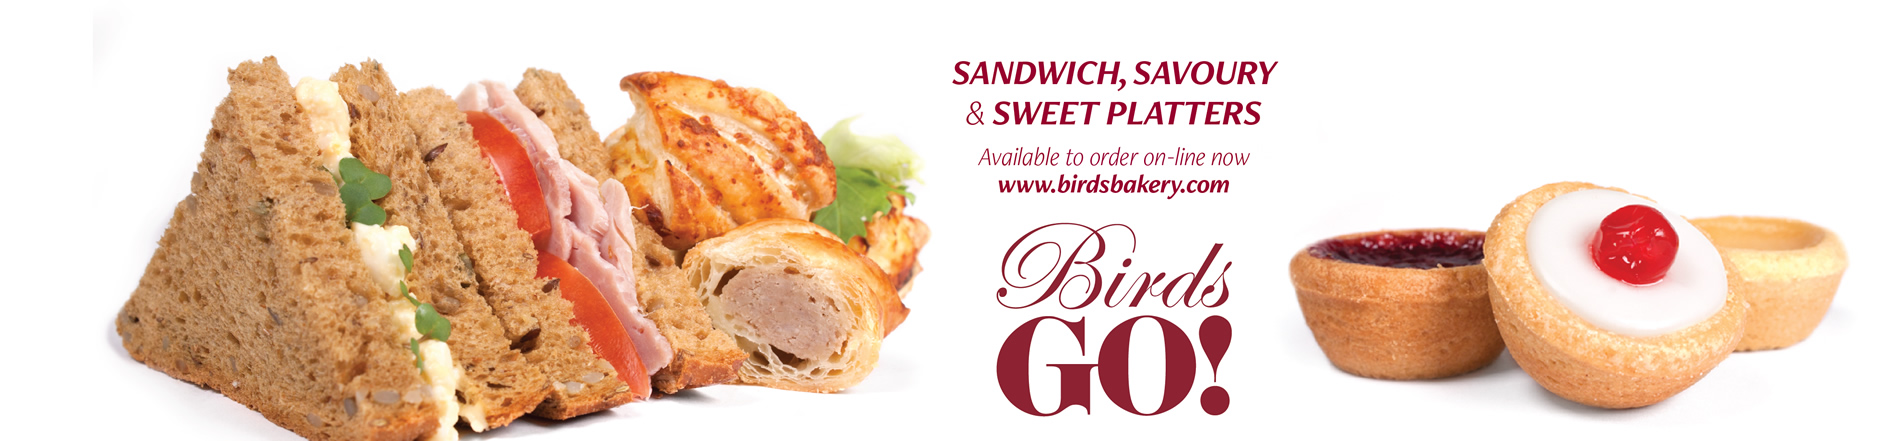 Sandwich, Savoury and Sweet Platters available to order online now